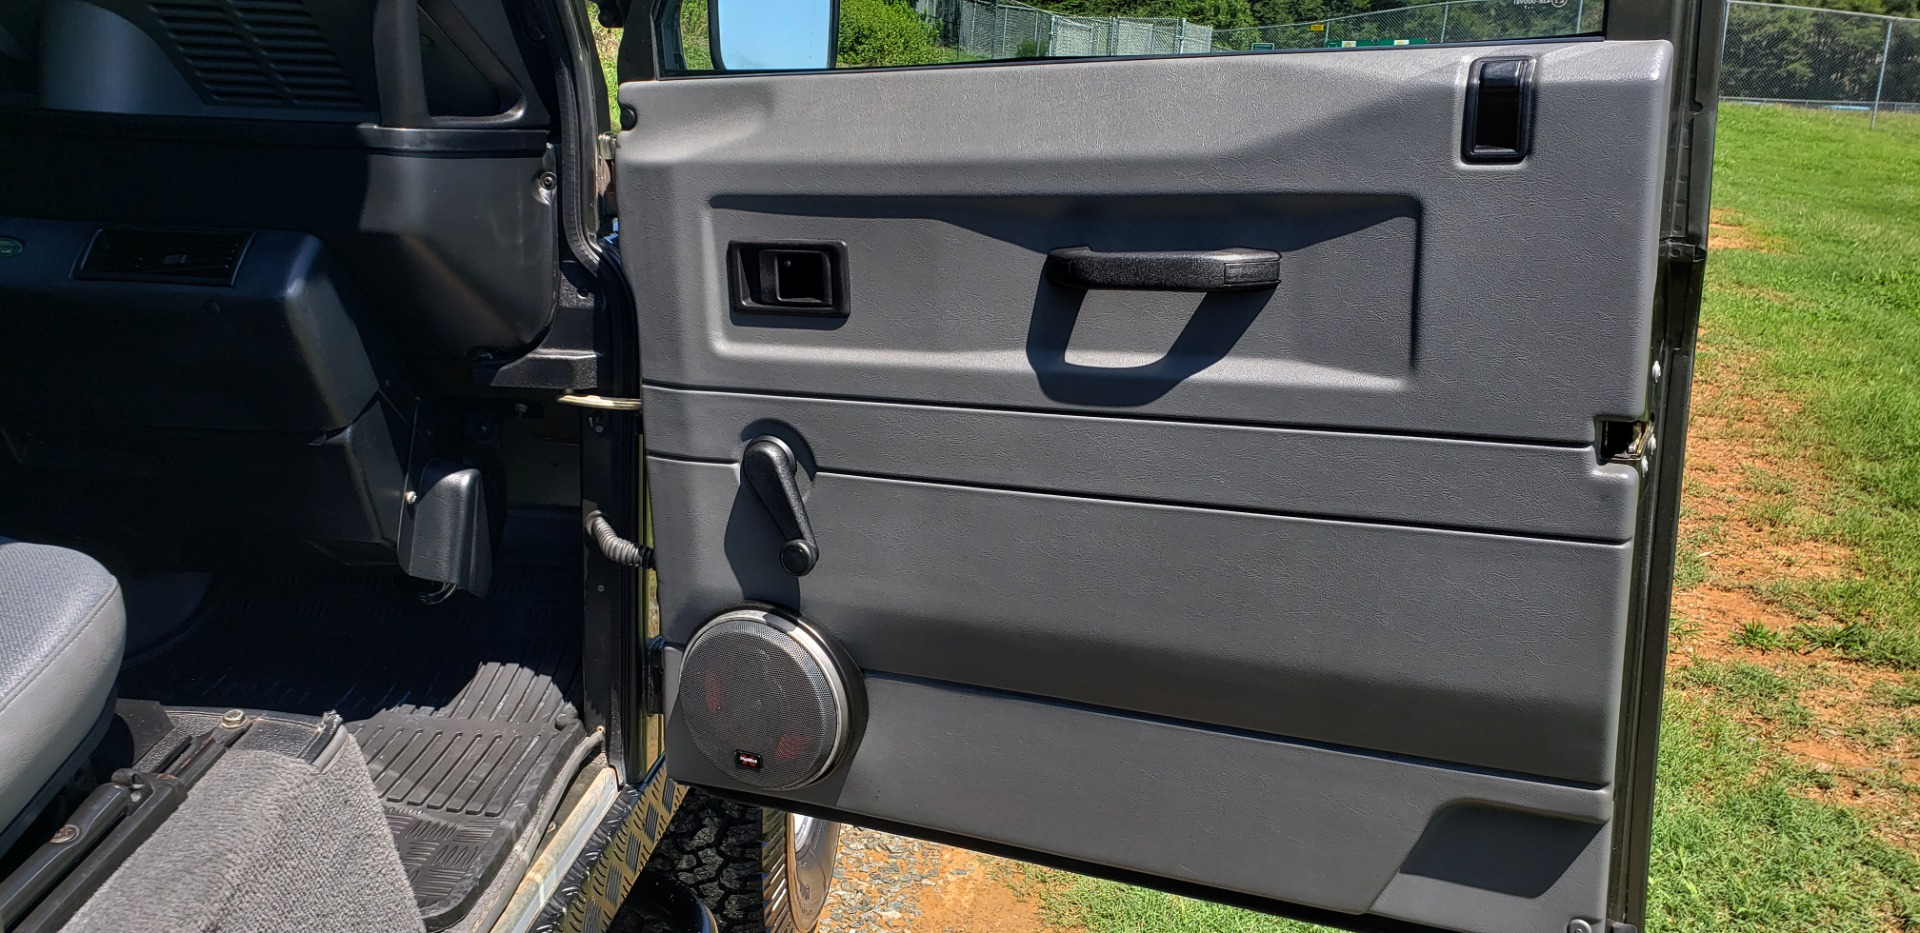 Used 1997 Land Rover DEFENDER 90 LIMITED EDITION / HARD-TOP / 4WD / FULLY RESTORED / LOW MILES for sale $119,000 at Formula Imports in Charlotte NC 28227 56